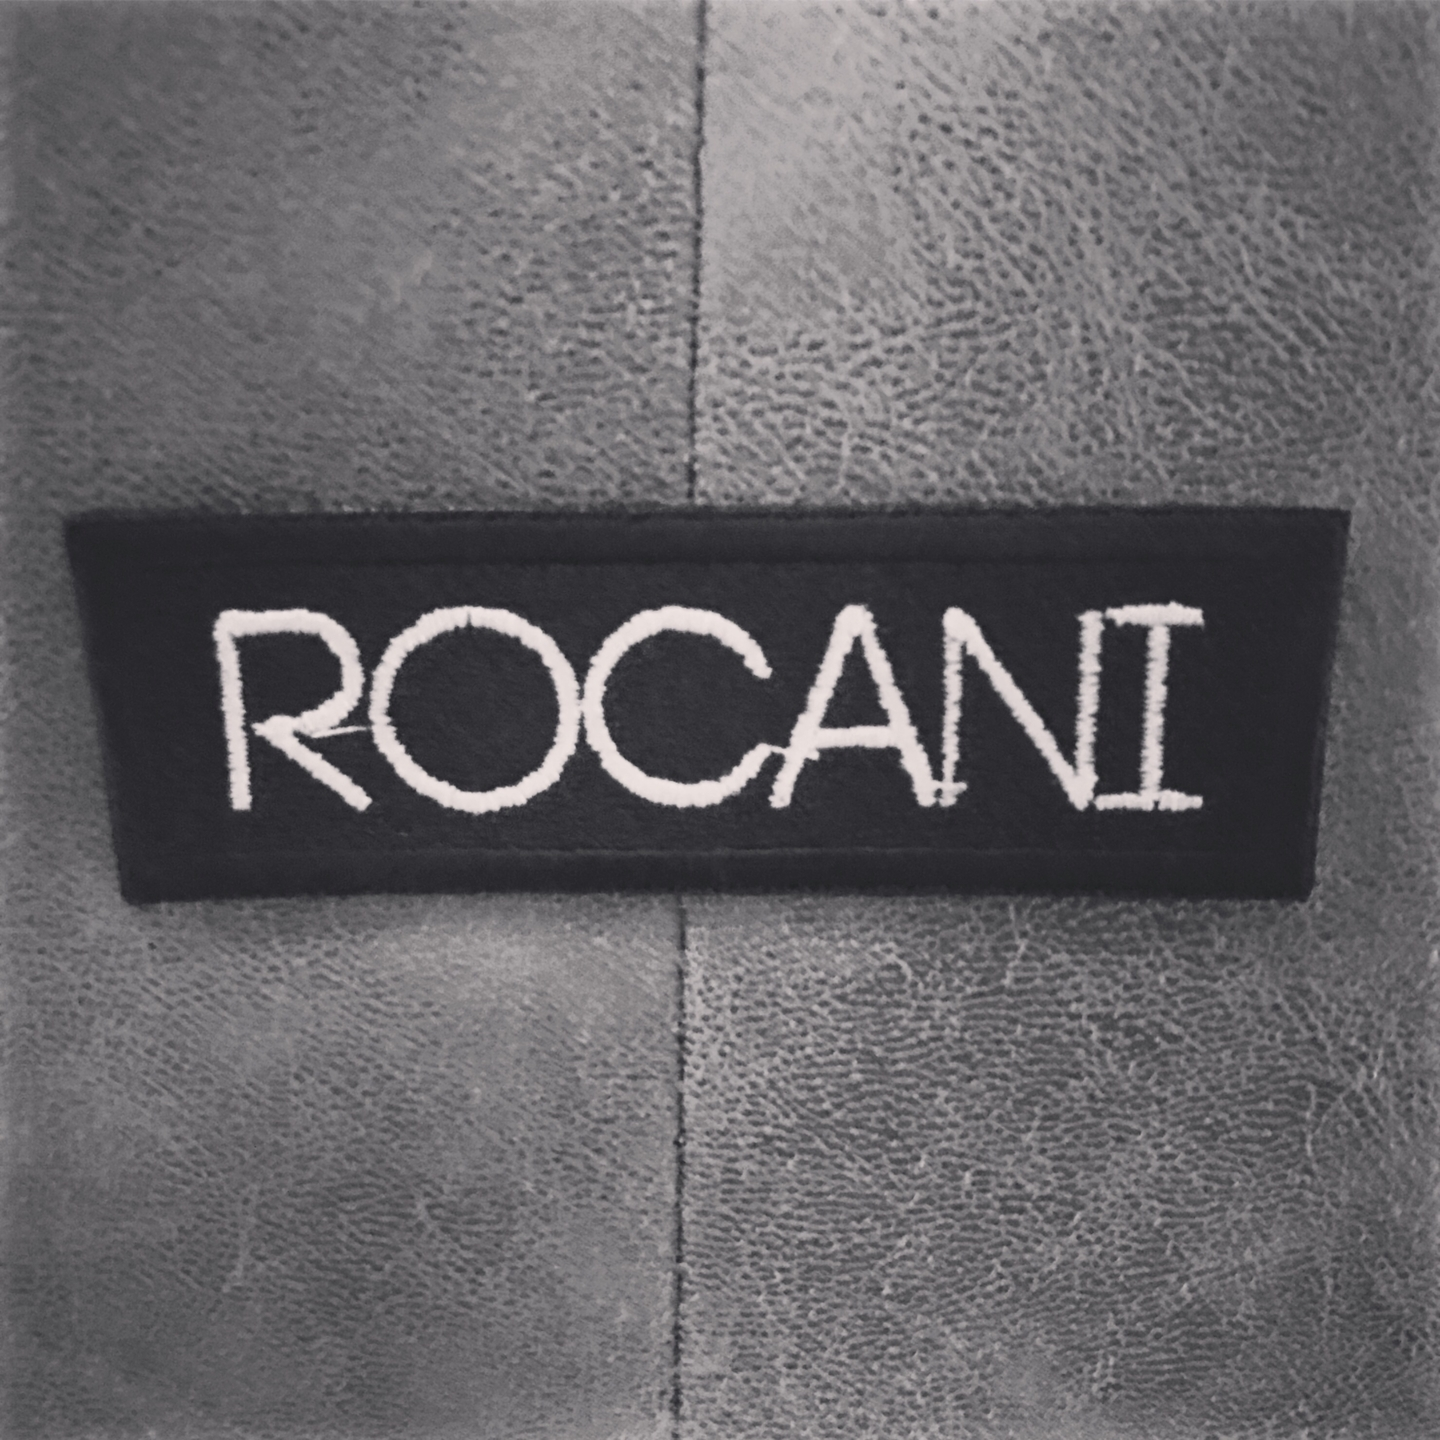 Rocani clothing  (@rocani-clothing) Cover Image